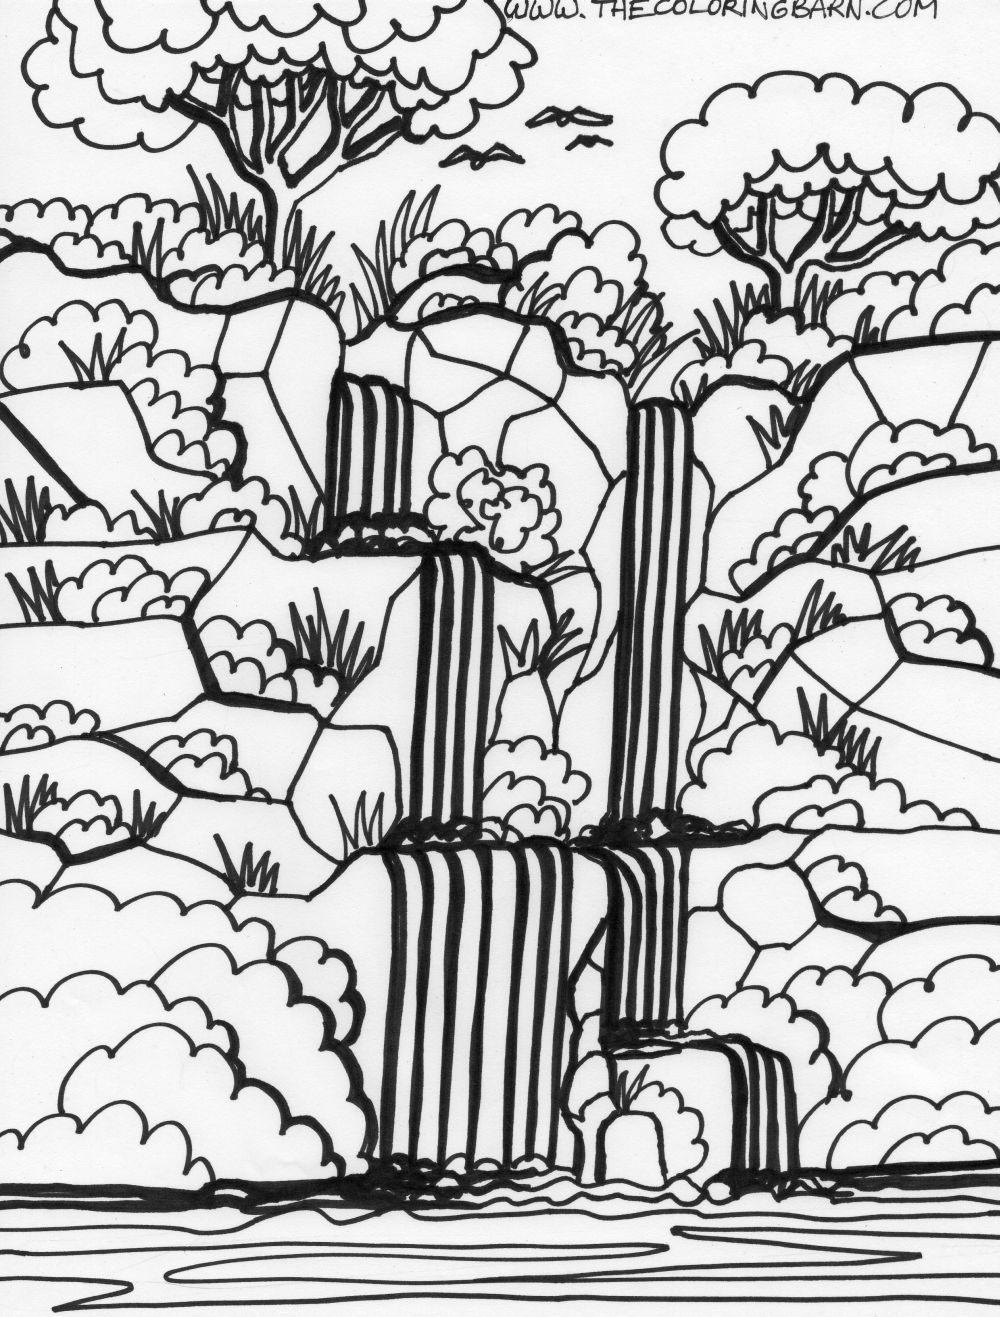 Amazon Rainforest Coloring Pages For Kids | Free Download Coloring - Free Printable Waterfall Coloring Pages